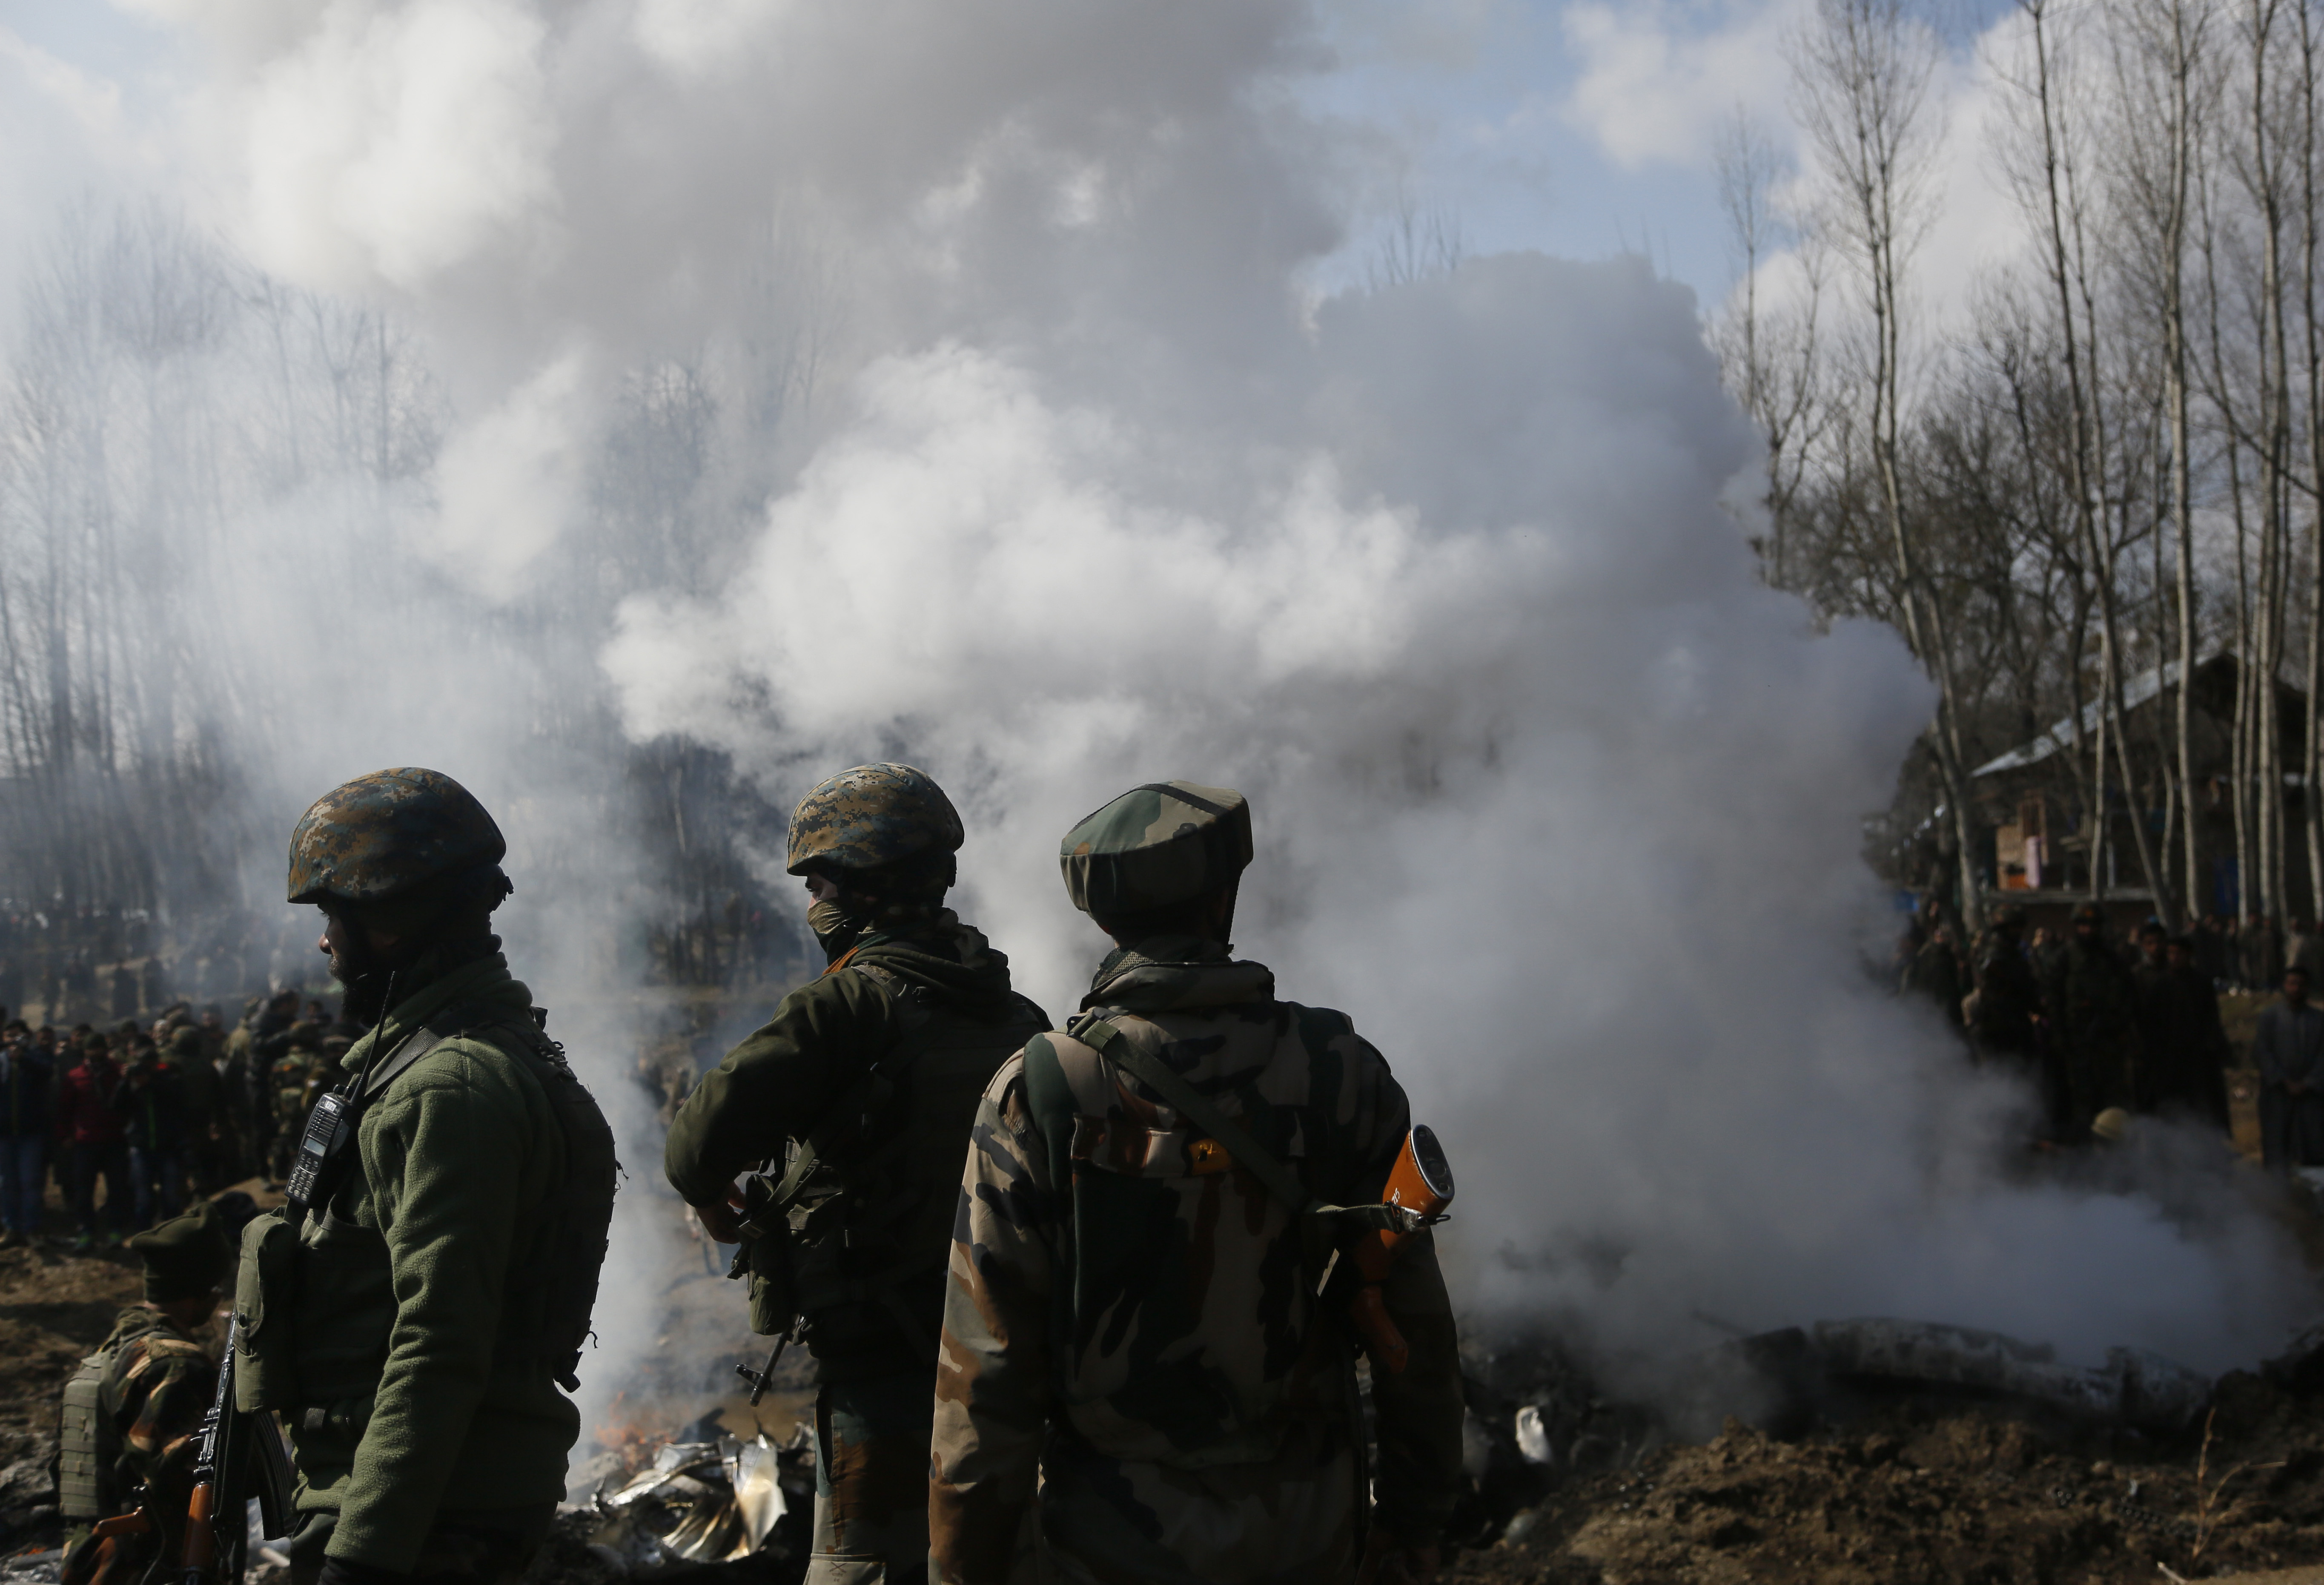 Indian army soldiers stand near the wreckage of an Indian aircraft after it crashed in Budgam area, outskirts of Srinagar, Indian controlled Kashmir, Wednesday, Feb.27, 2019. (AP Photo/Mukhtar Khan)